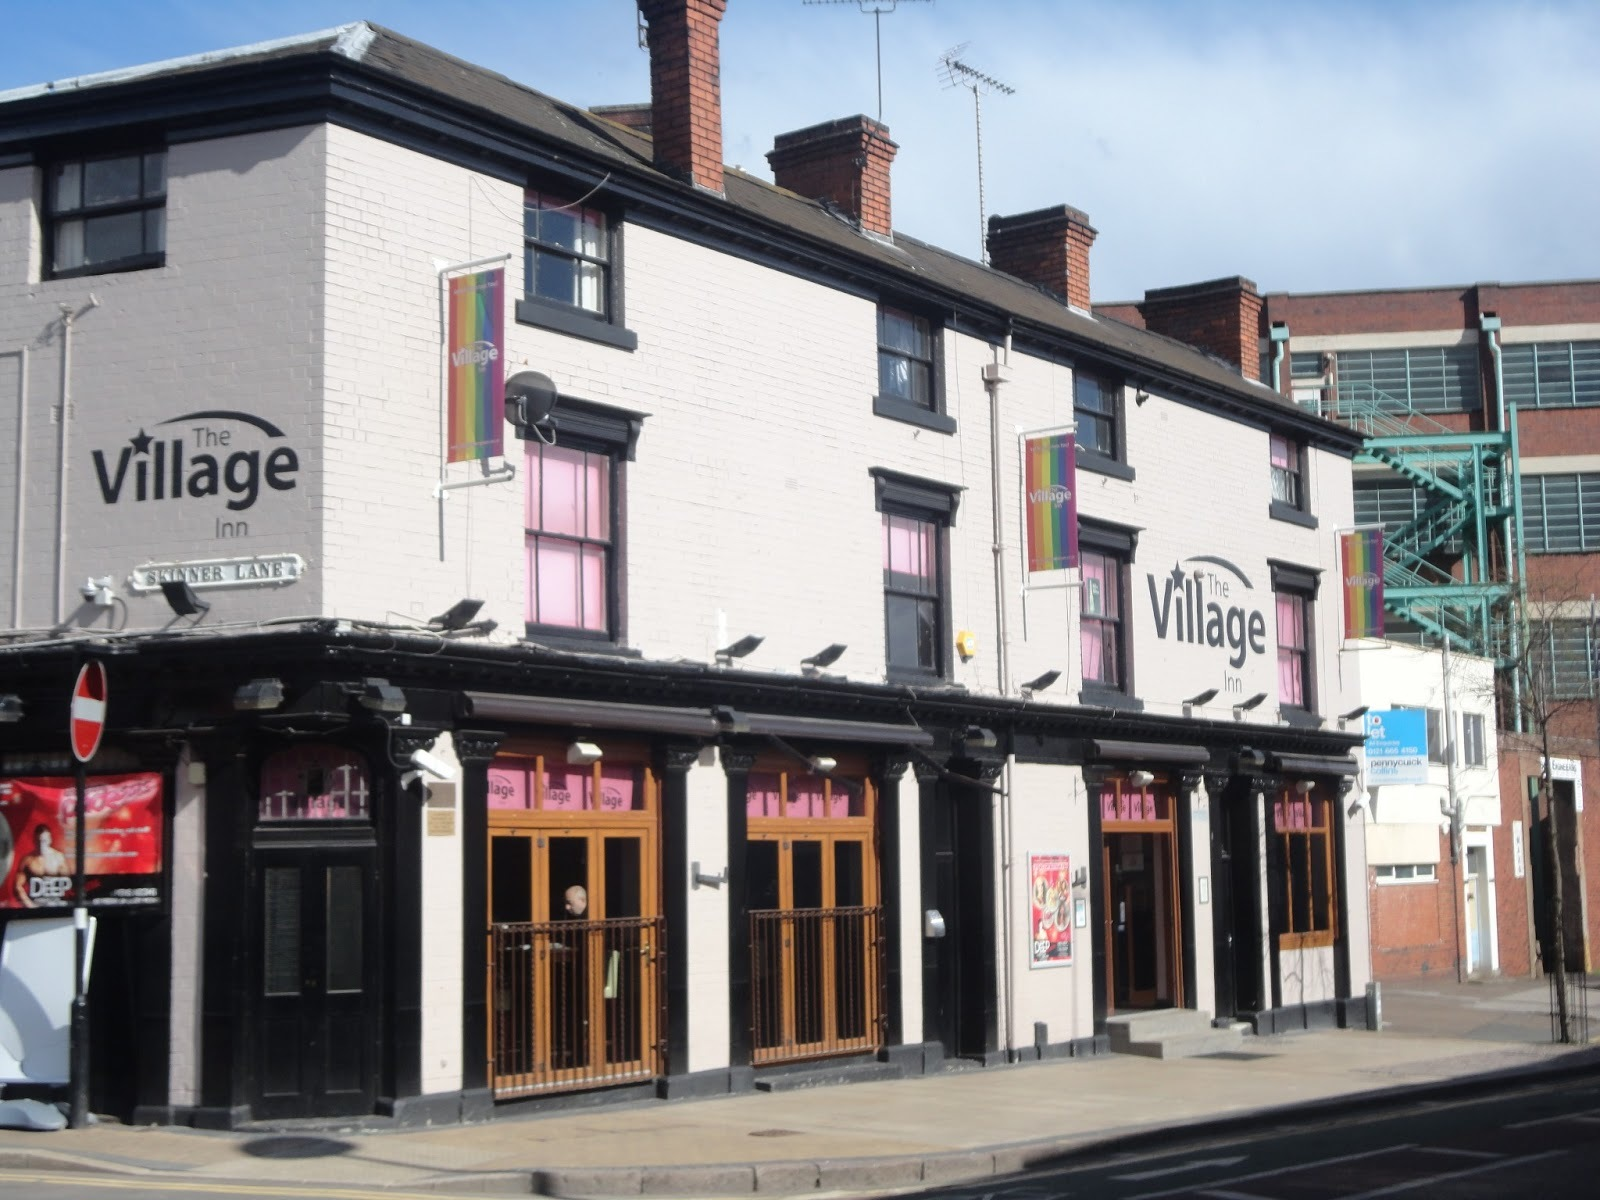 The Village Inn, Birmingham